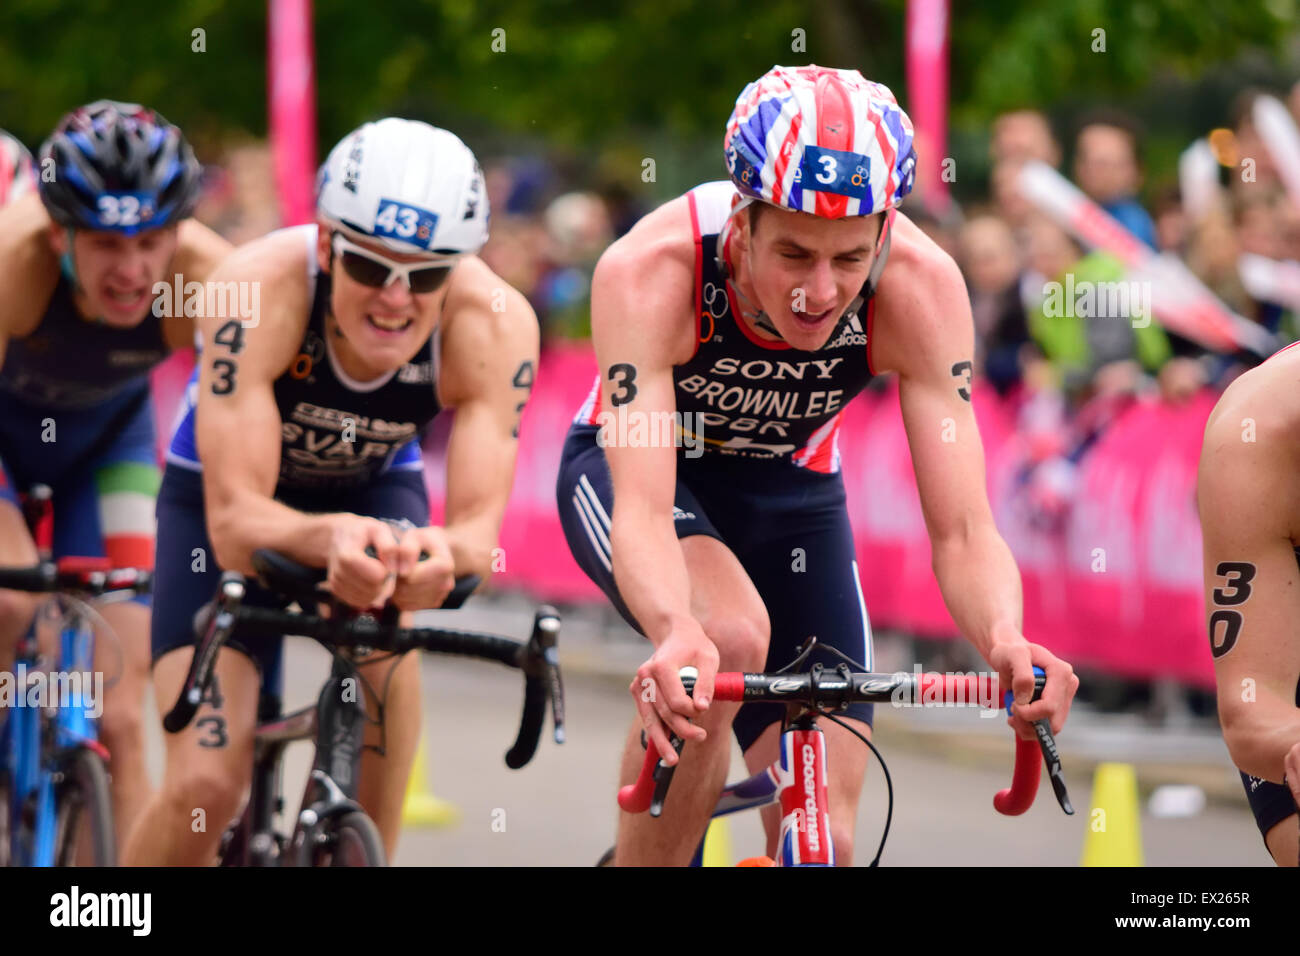 Jonathan Brownlee cycling in a triathlon - Stock Image